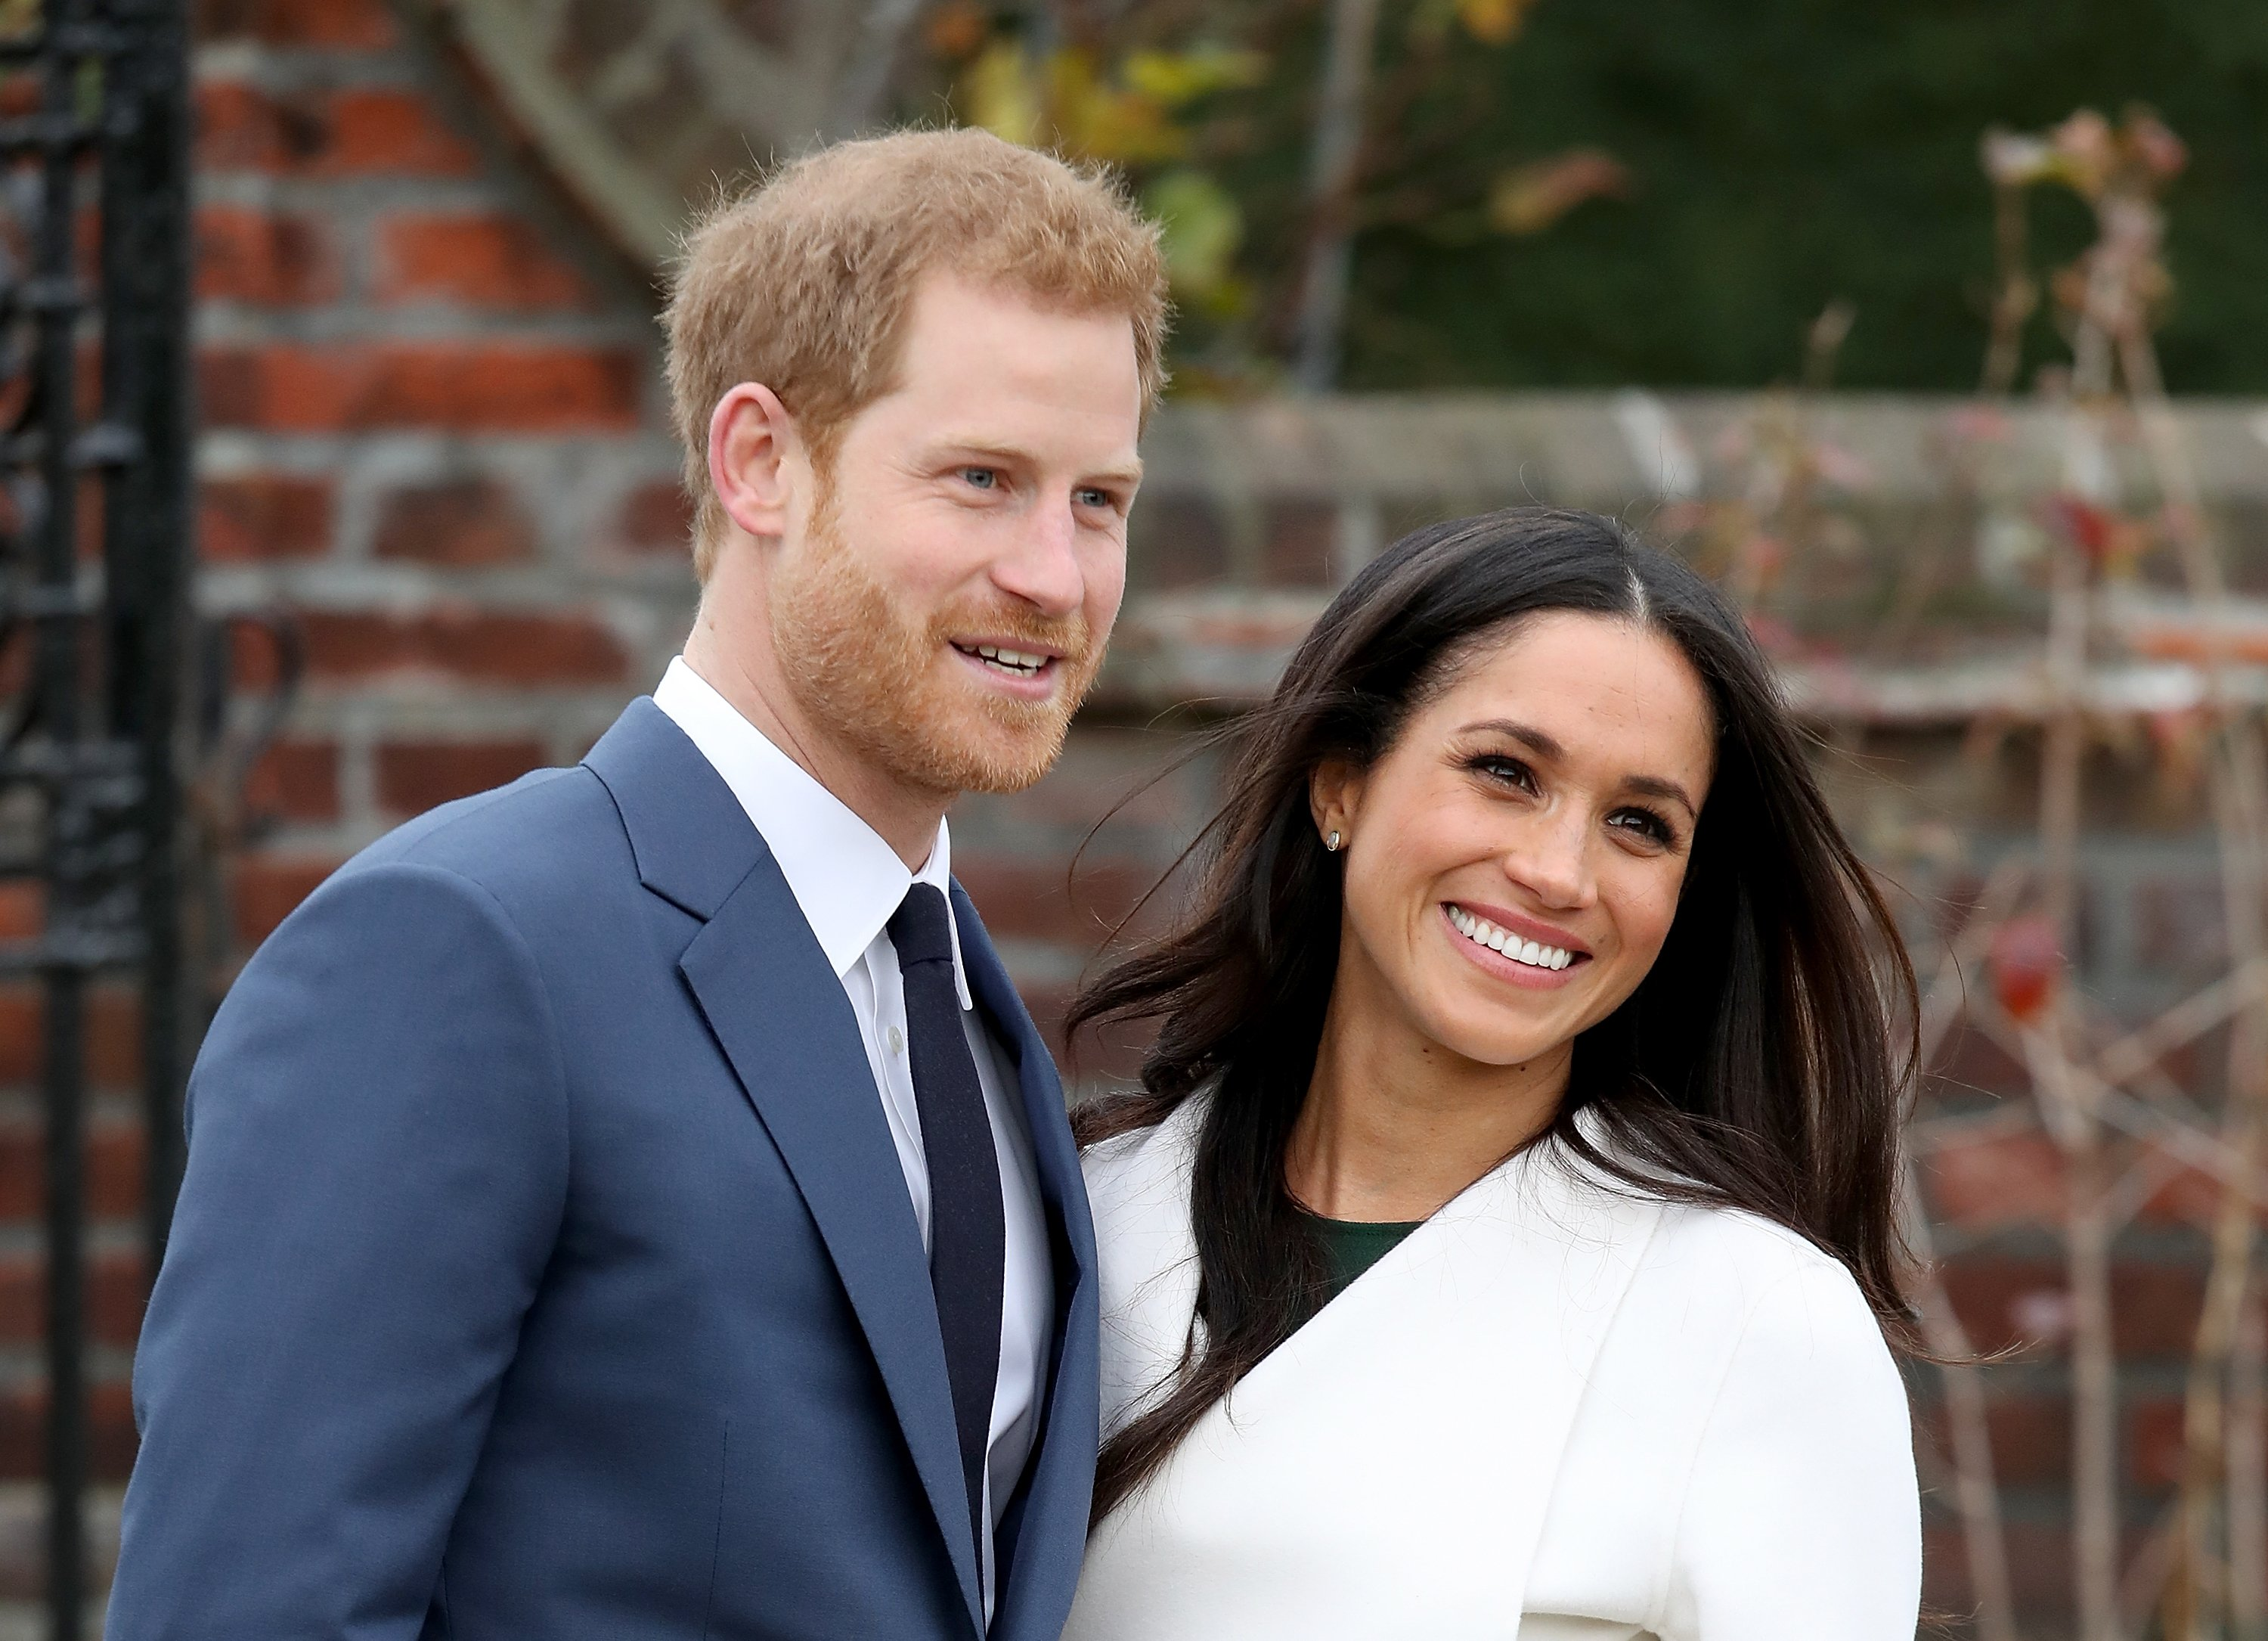 Prince Harry and actress Meghan Markle during an official photocall to announce their engagement at The Sunken Gardens at Kensington Palace on November 27, 2017. | Photo: Getty Images